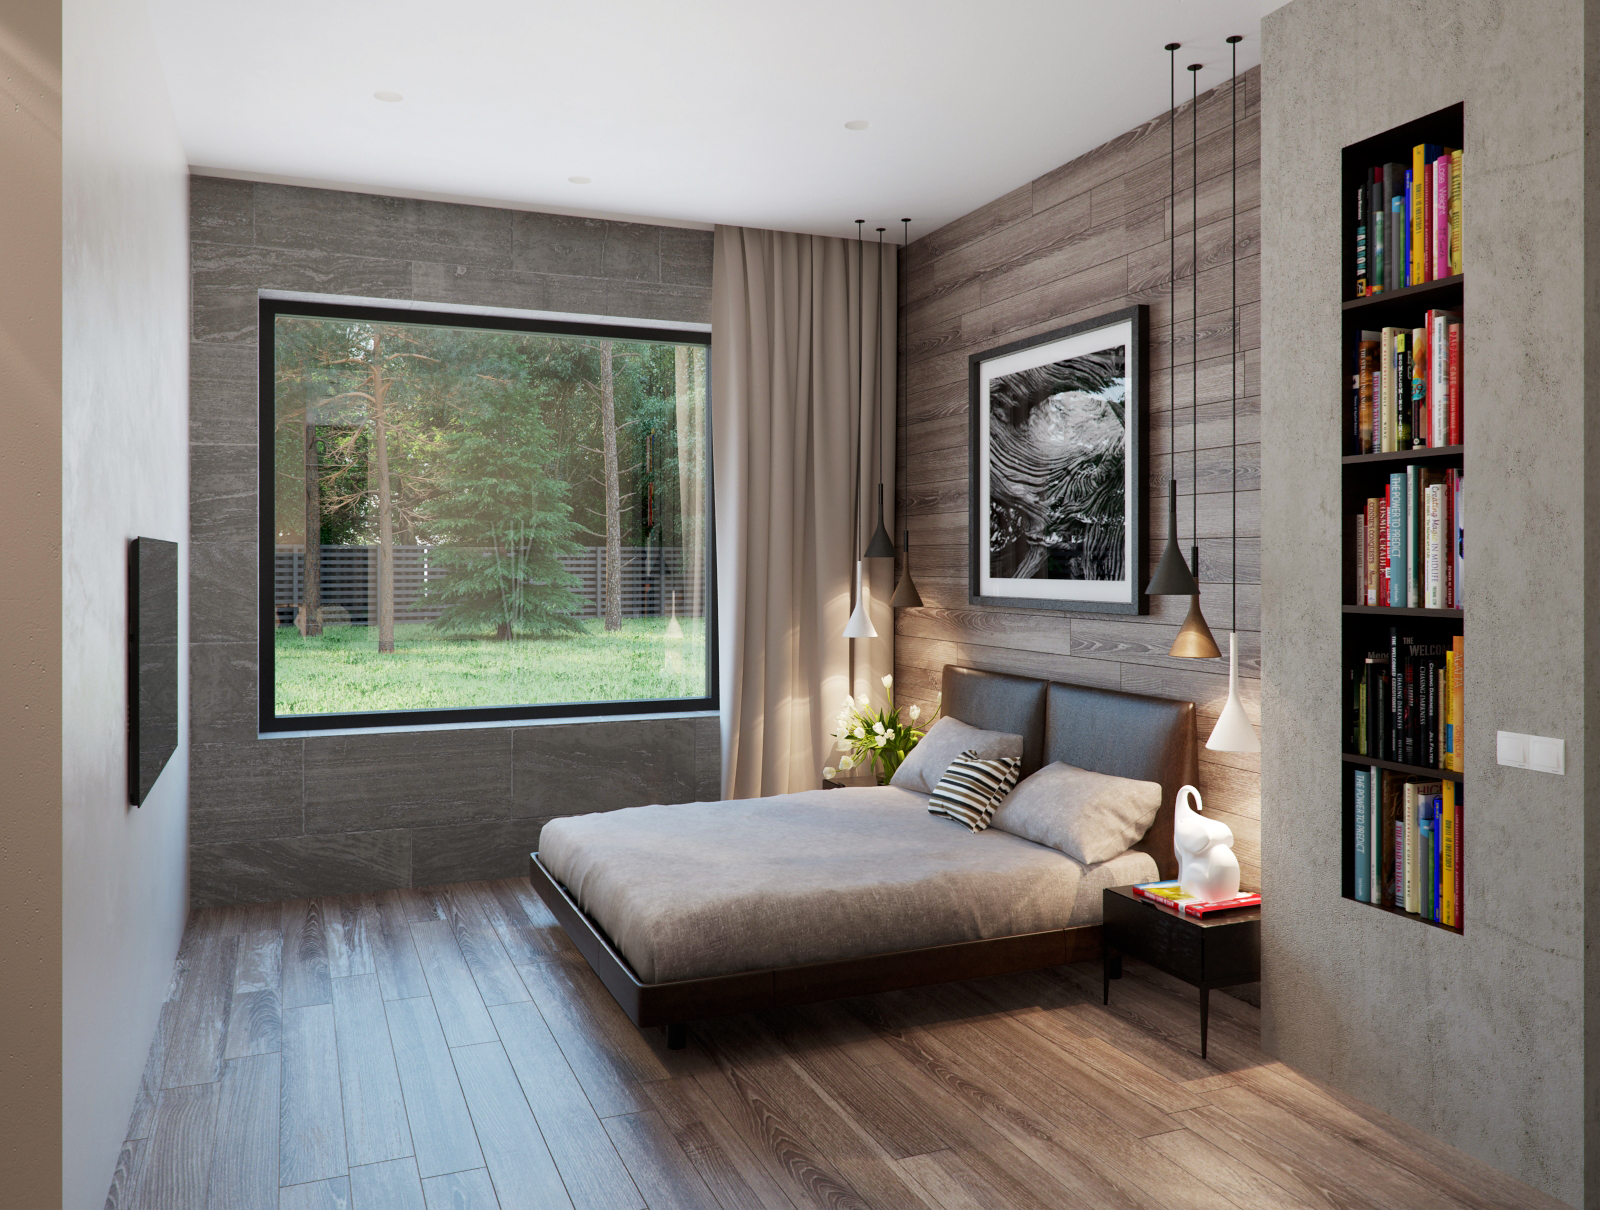 Model Jendela Kaca Minimalis 20 Small Bedroom Ideas That Will Leave You Speechless